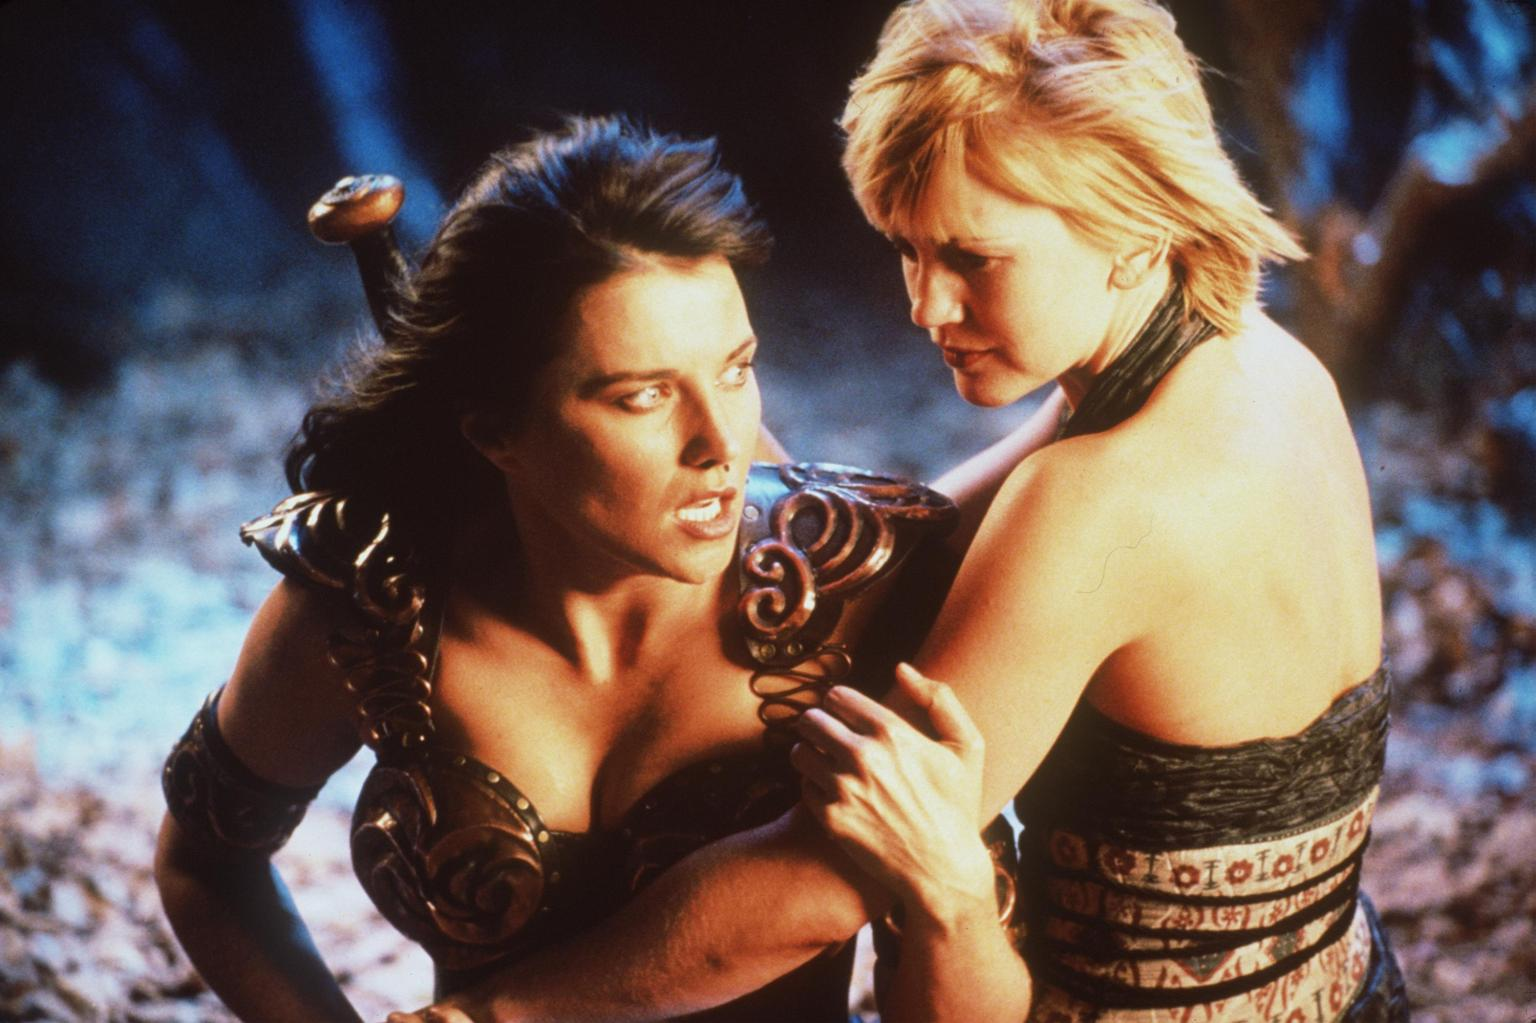 Lucy Lawless On How She'd Bring Back 'Xena'